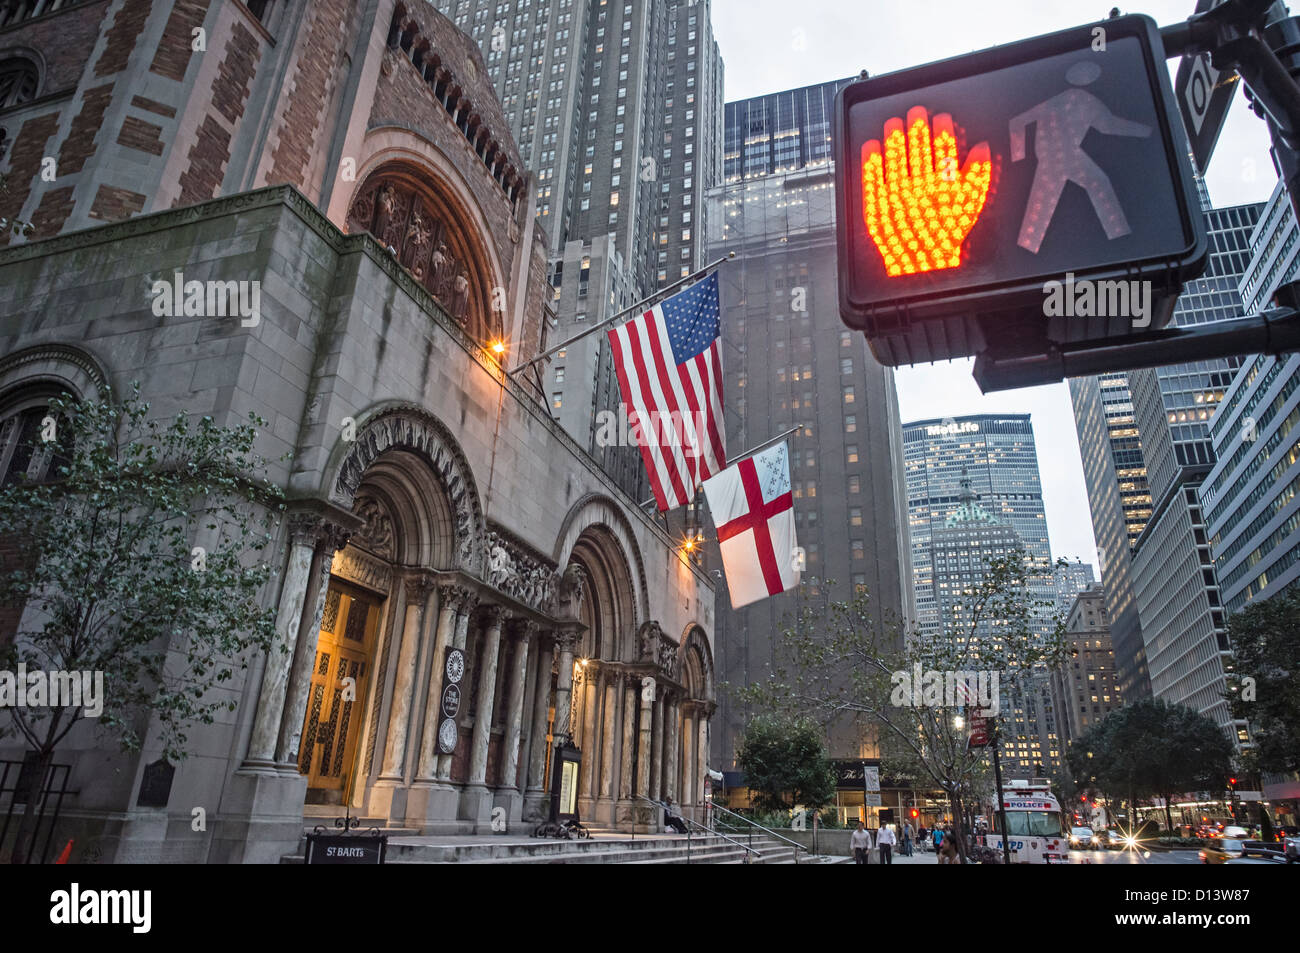 St. Barths Episcopal church, Park Avenue, Manhattan, New York City - Stock Image